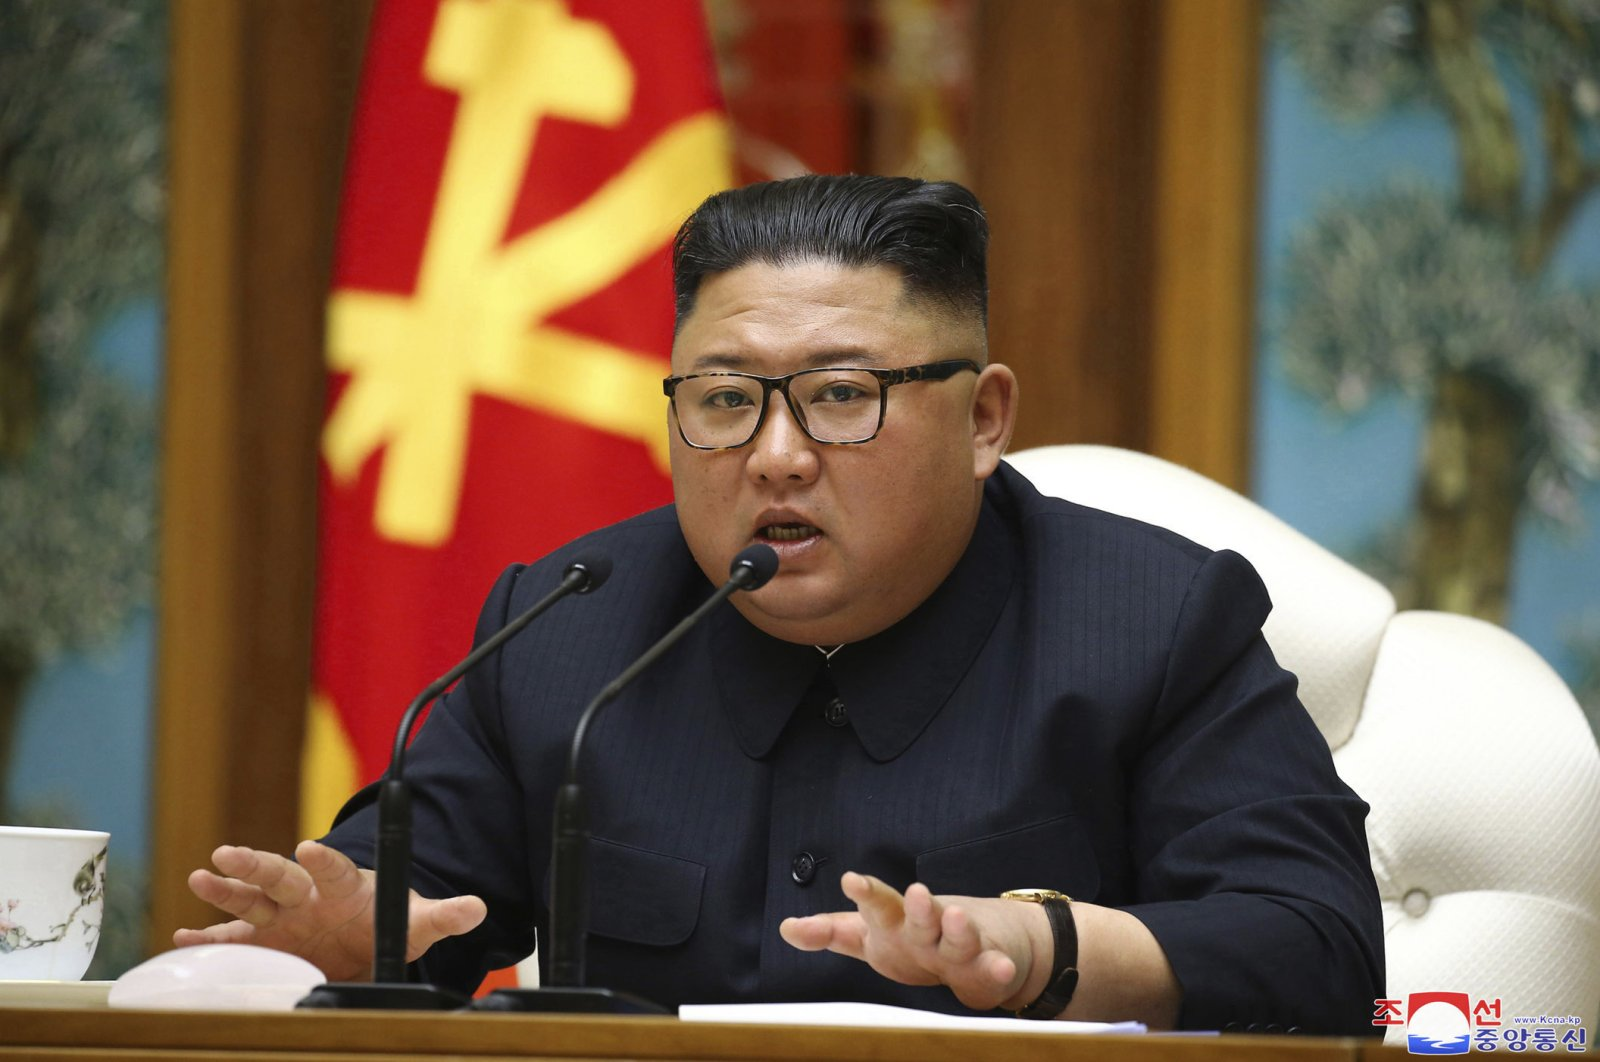 In this Saturday, April 11, 2020, file photo provided by the North Korean government, North Korean leader Kim Jong Un attends a politburo meeting of the ruling Workers' Party of Korea in Pyongyang. (Korean Central News Agency/Korea News Service via AP)